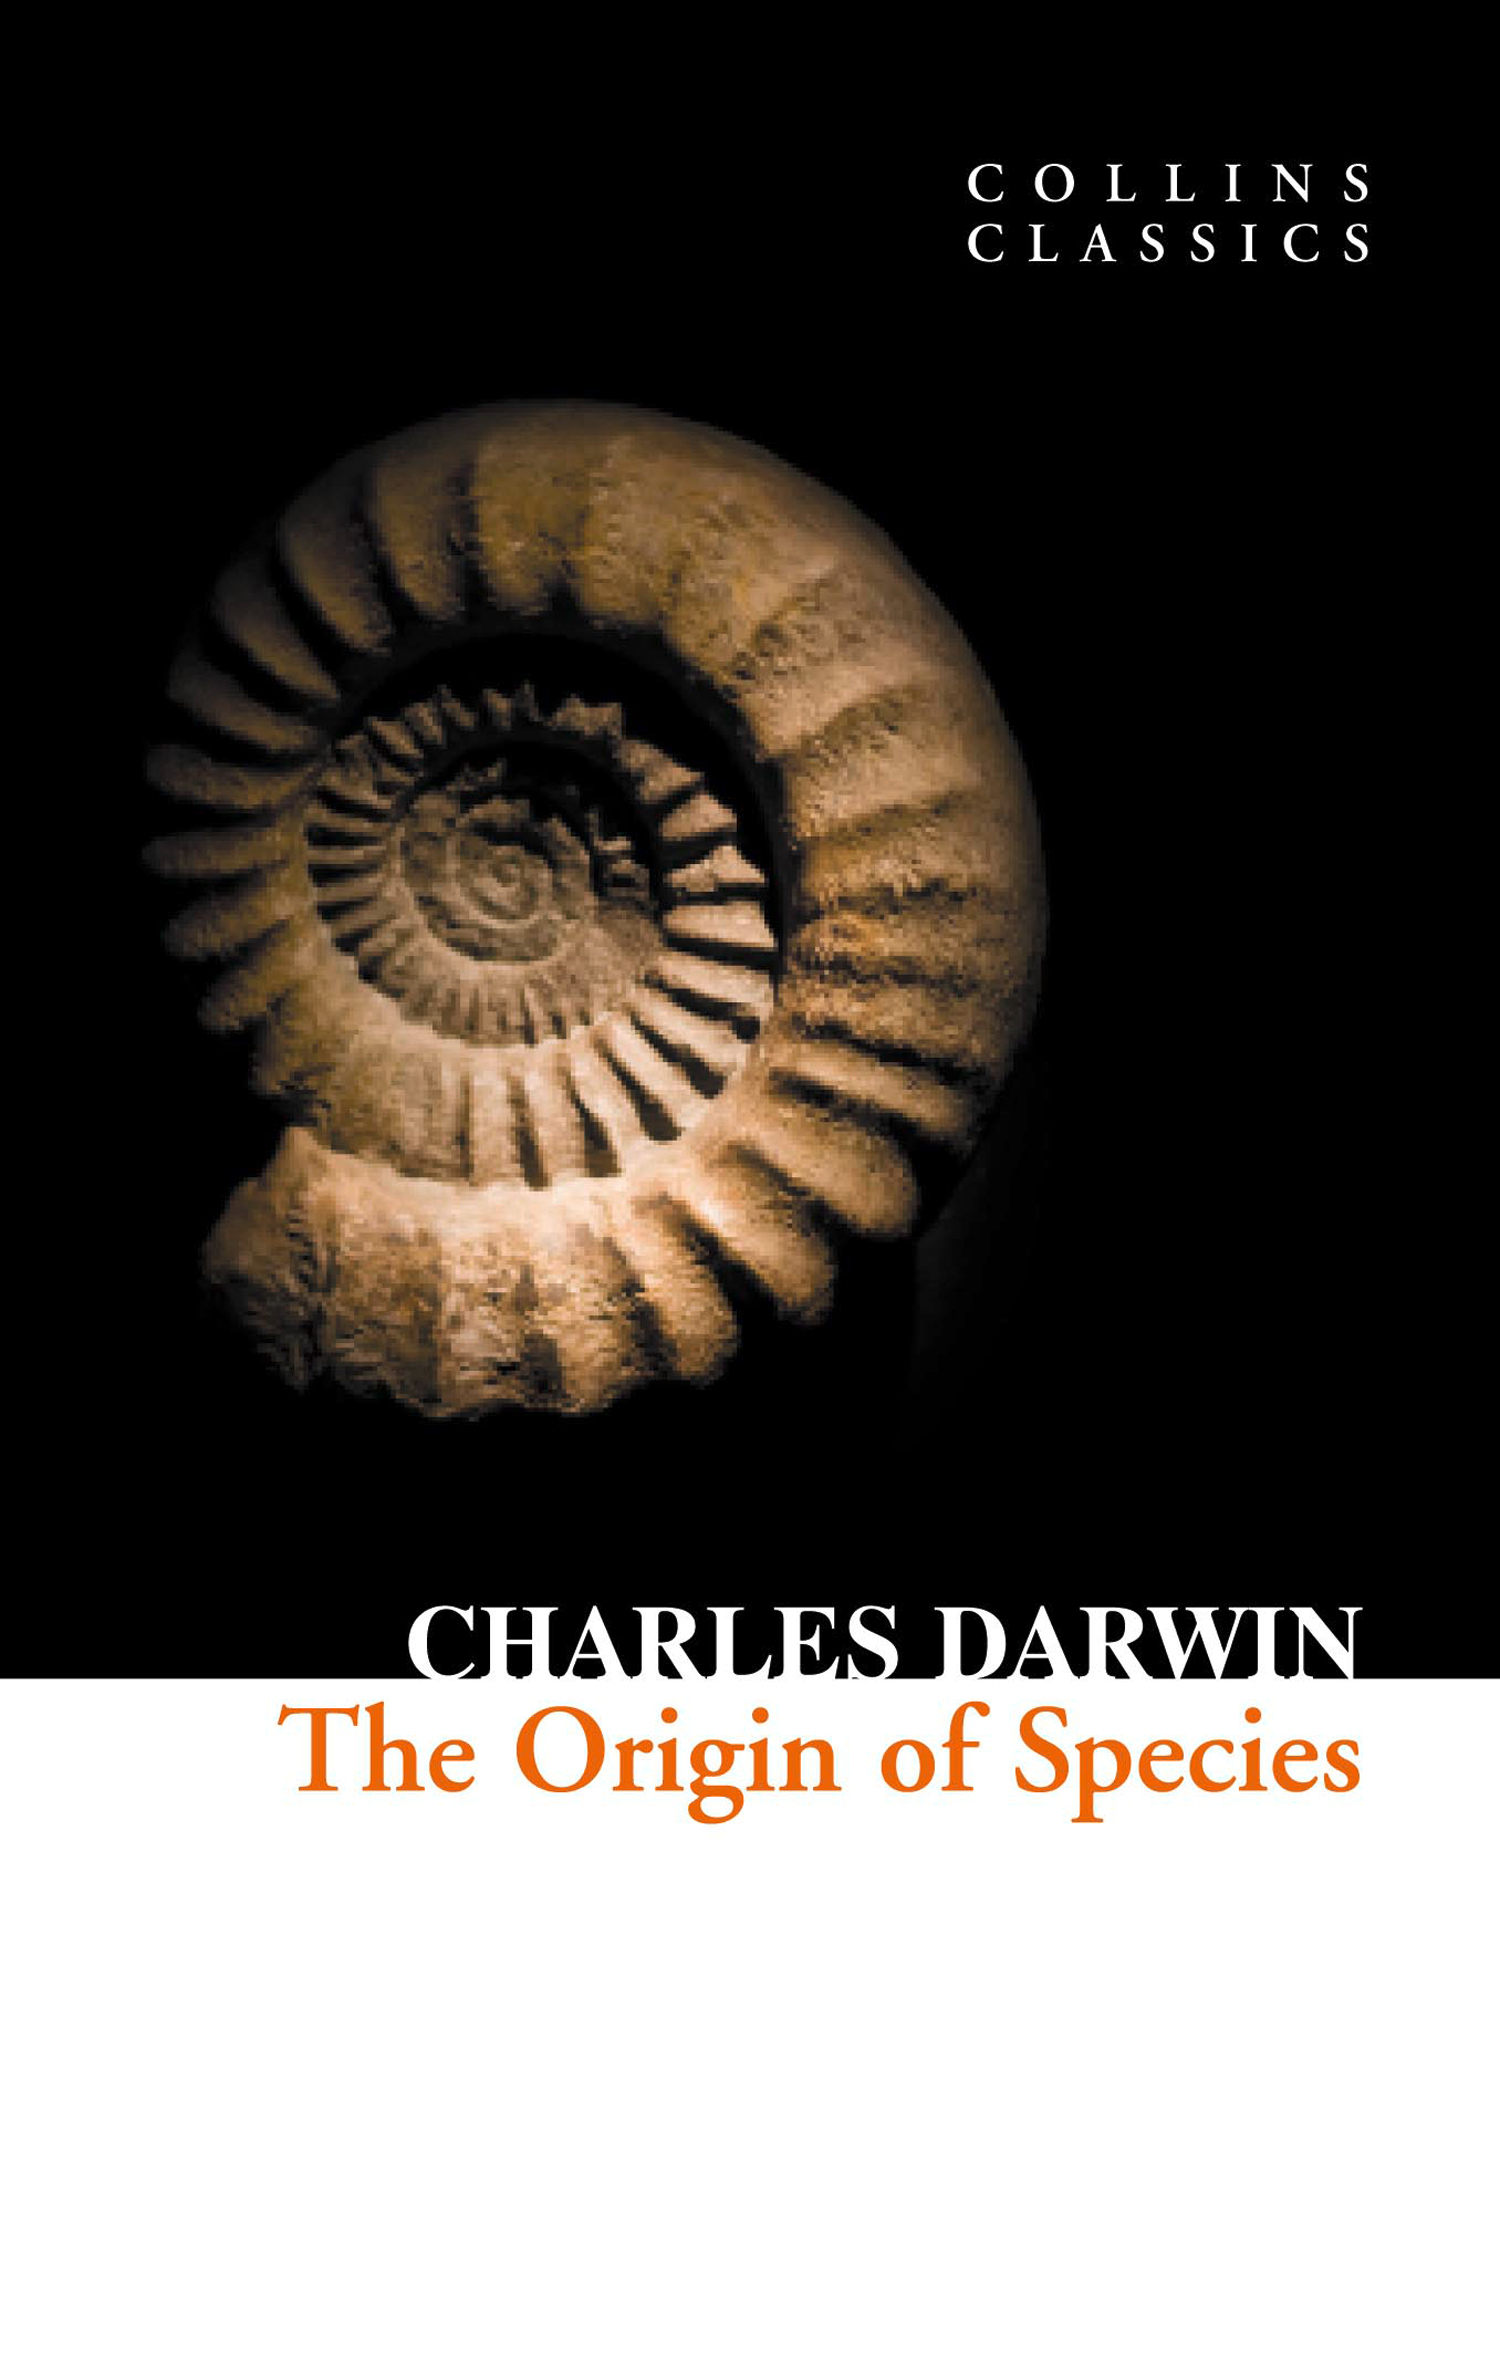 The Origin of Species (Collins Classics) By: Charles Darwin